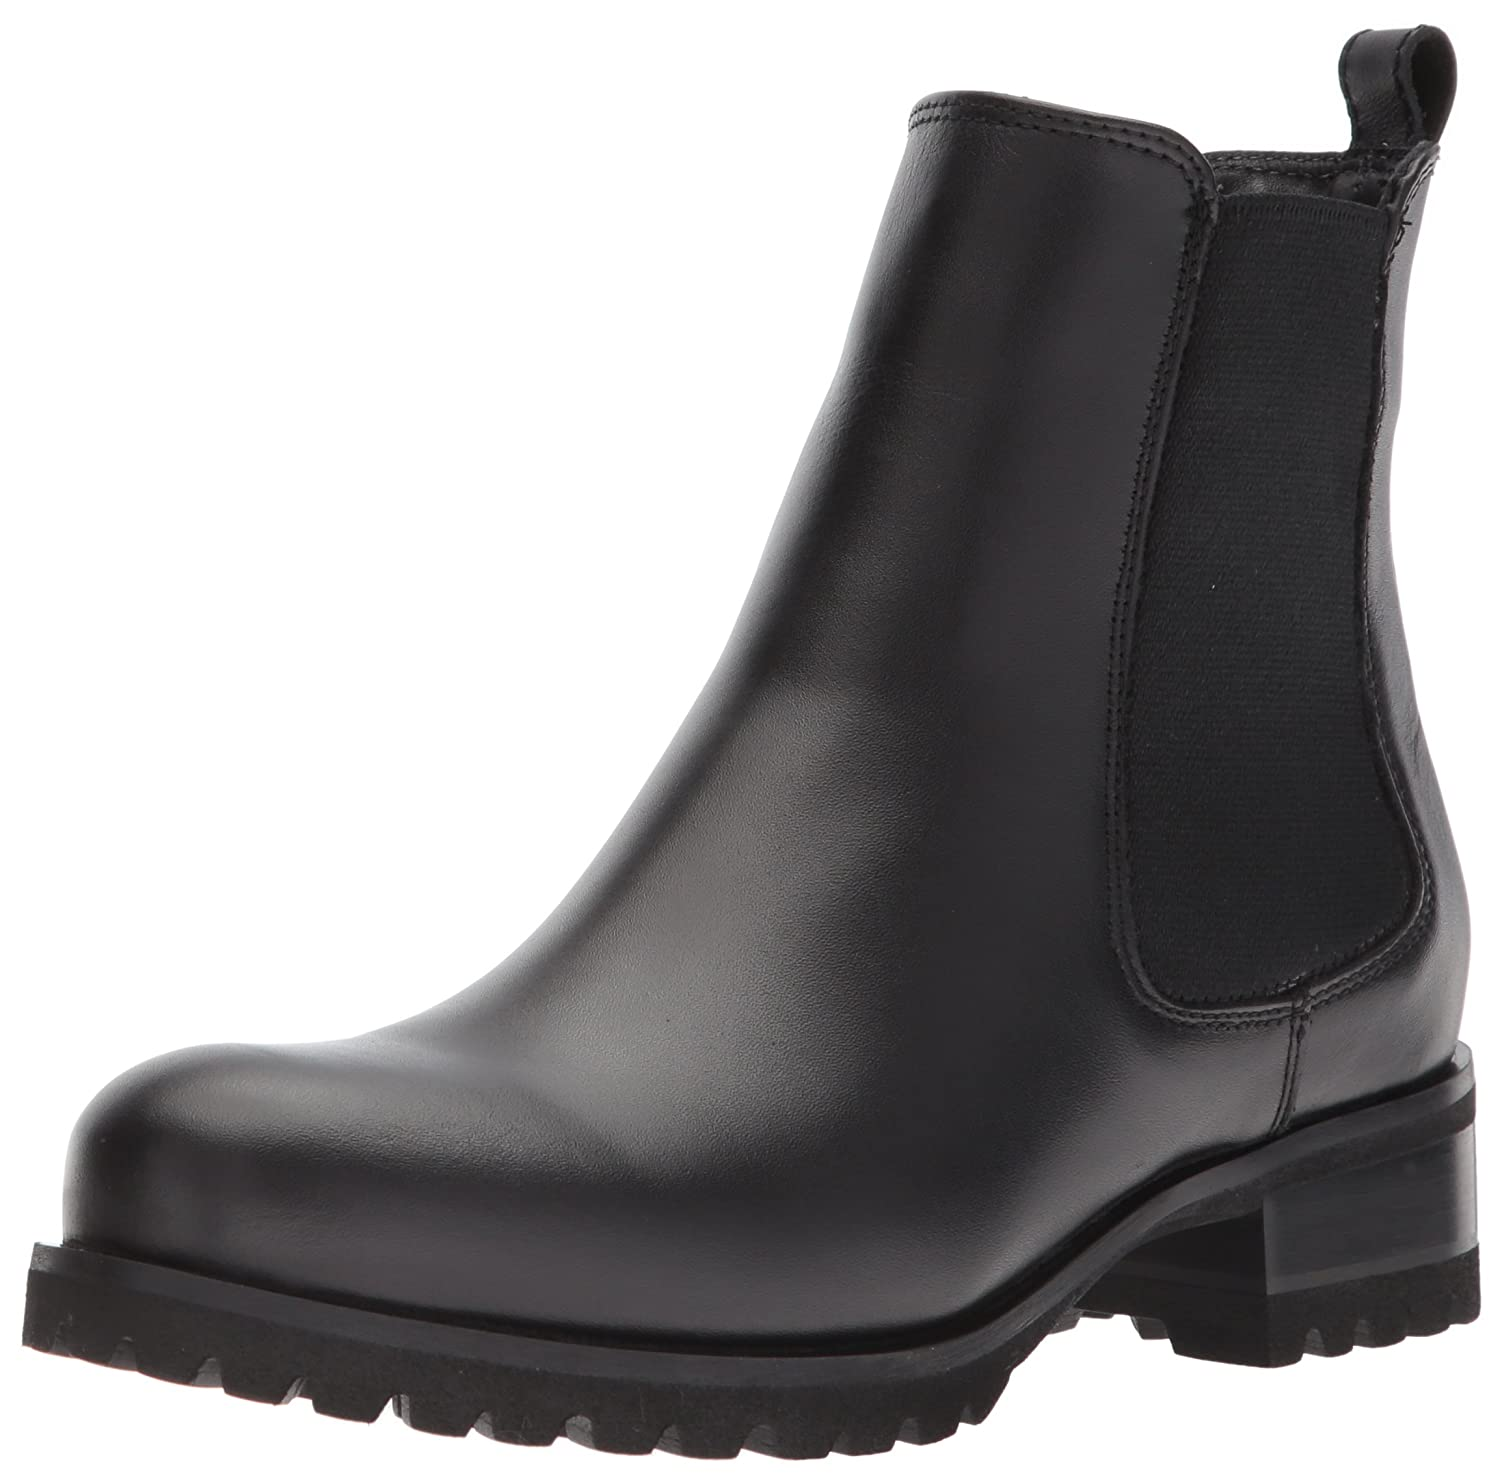 La Canadienne Women's Cleo Leather Fashion Boot B01NBVGVS8 5.5 M US|Black Leather